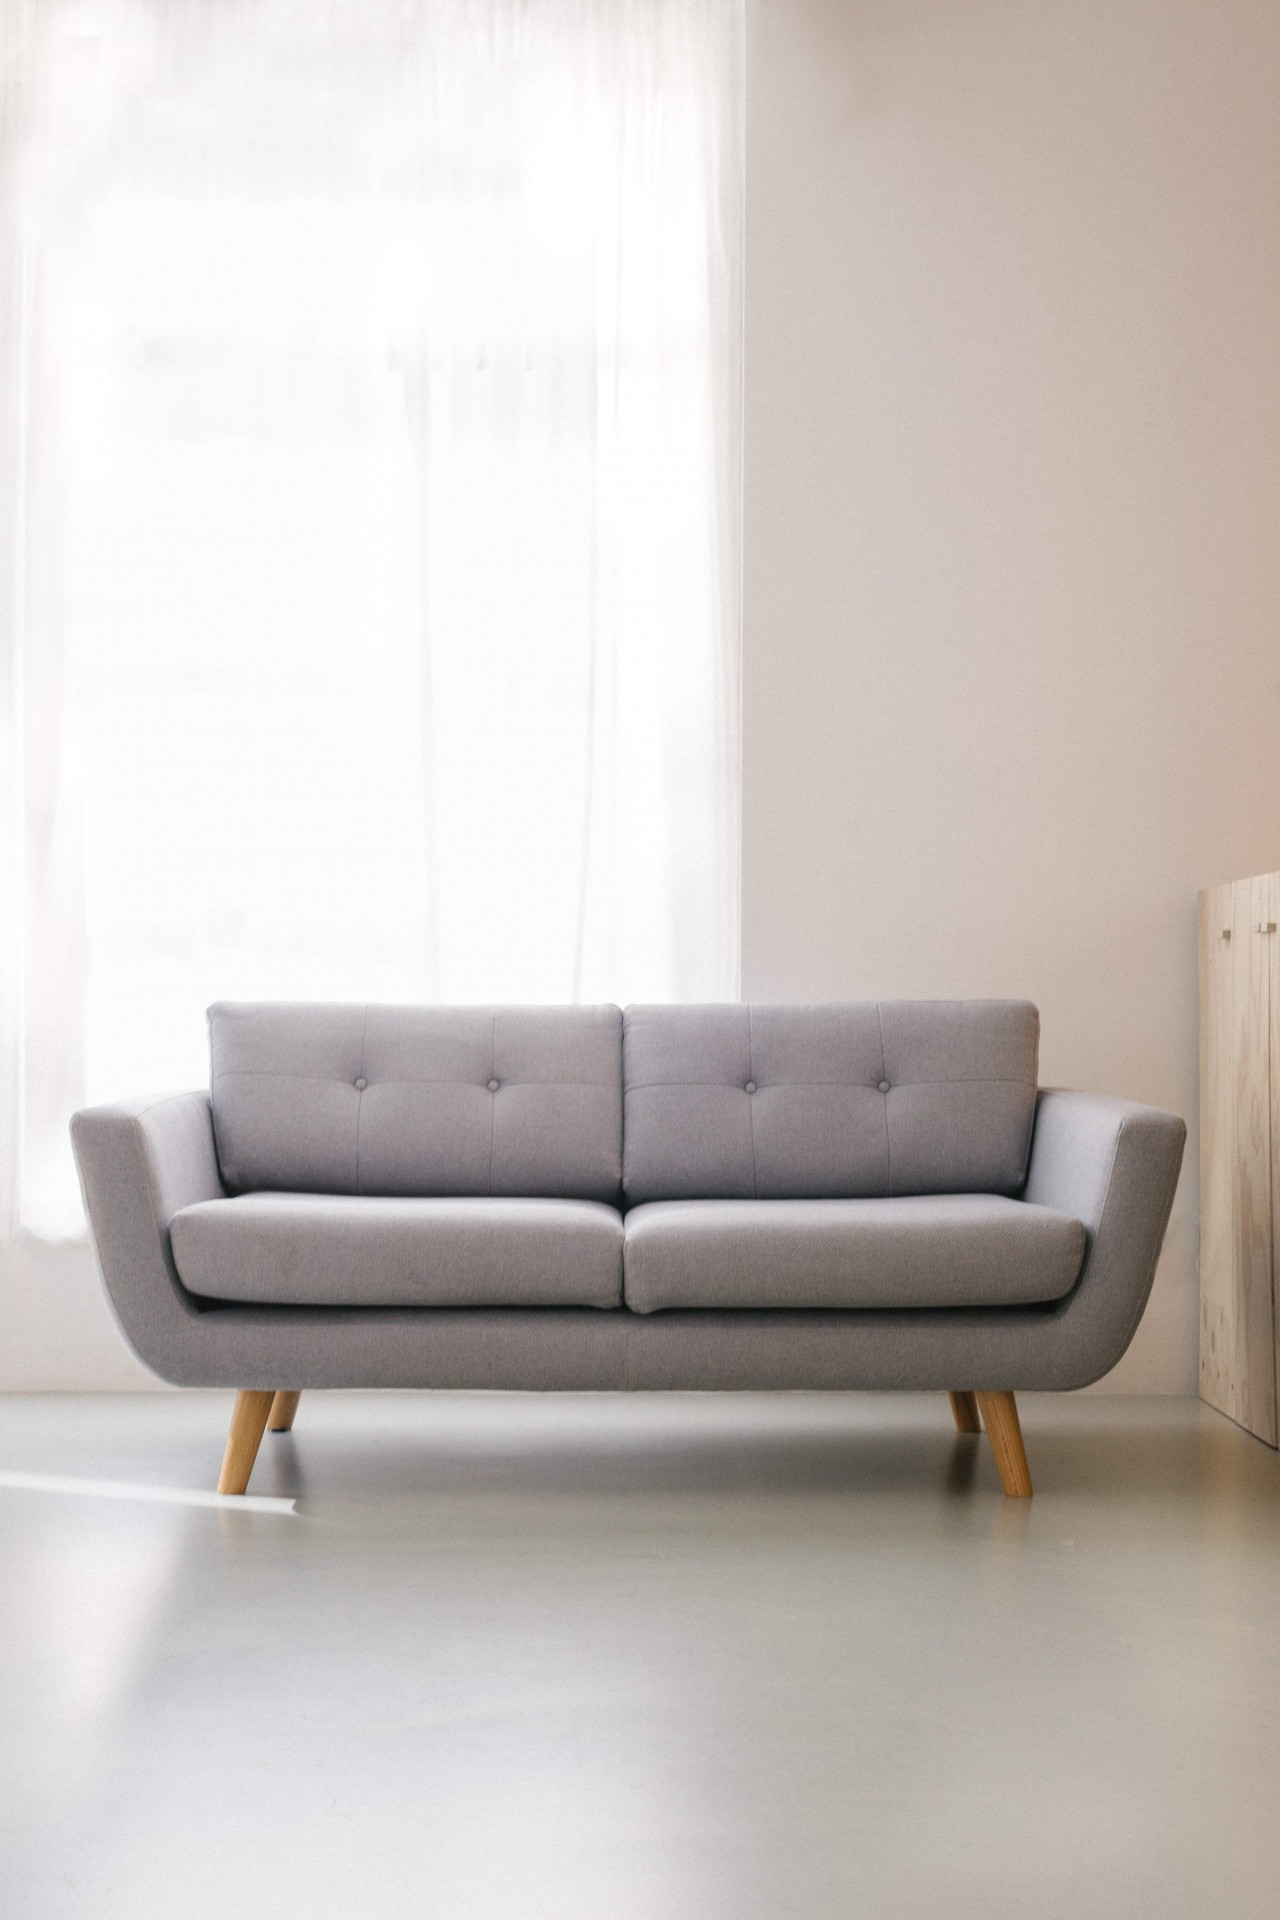 The Designer Sofa - Home - Facebook